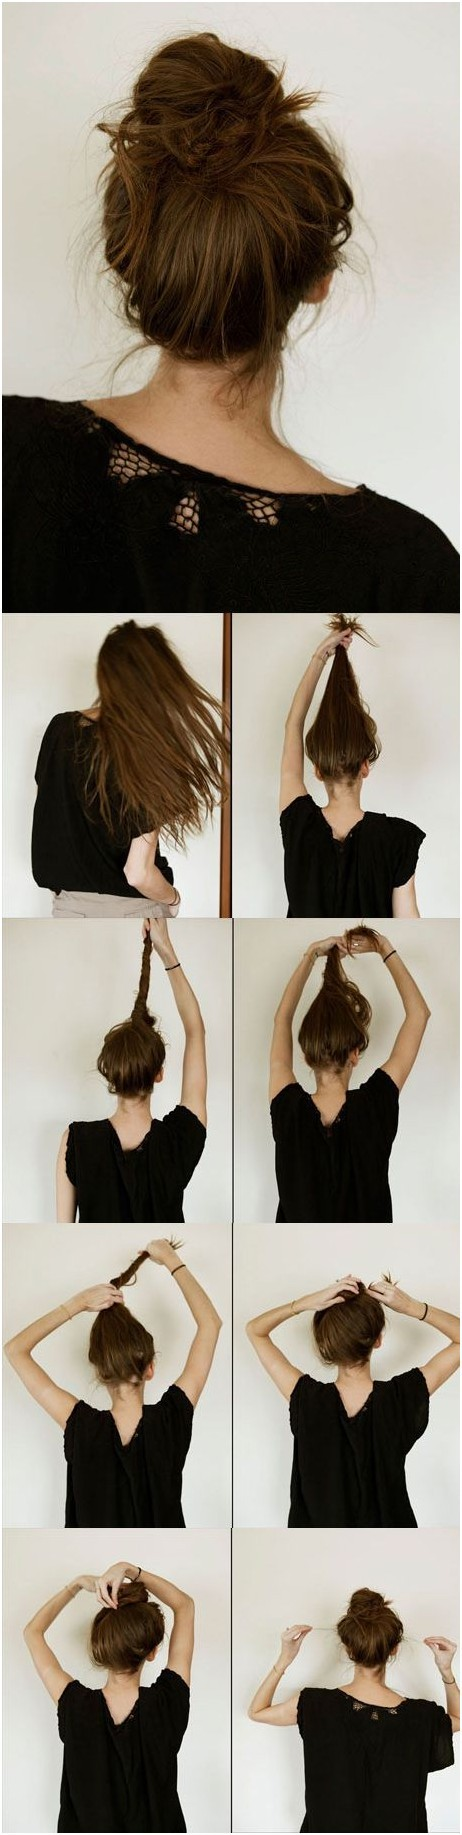 Wonderful Everyday Hairstyles For Long Hair: Messy Bun Tutorial. Messy Bun  Tutorial